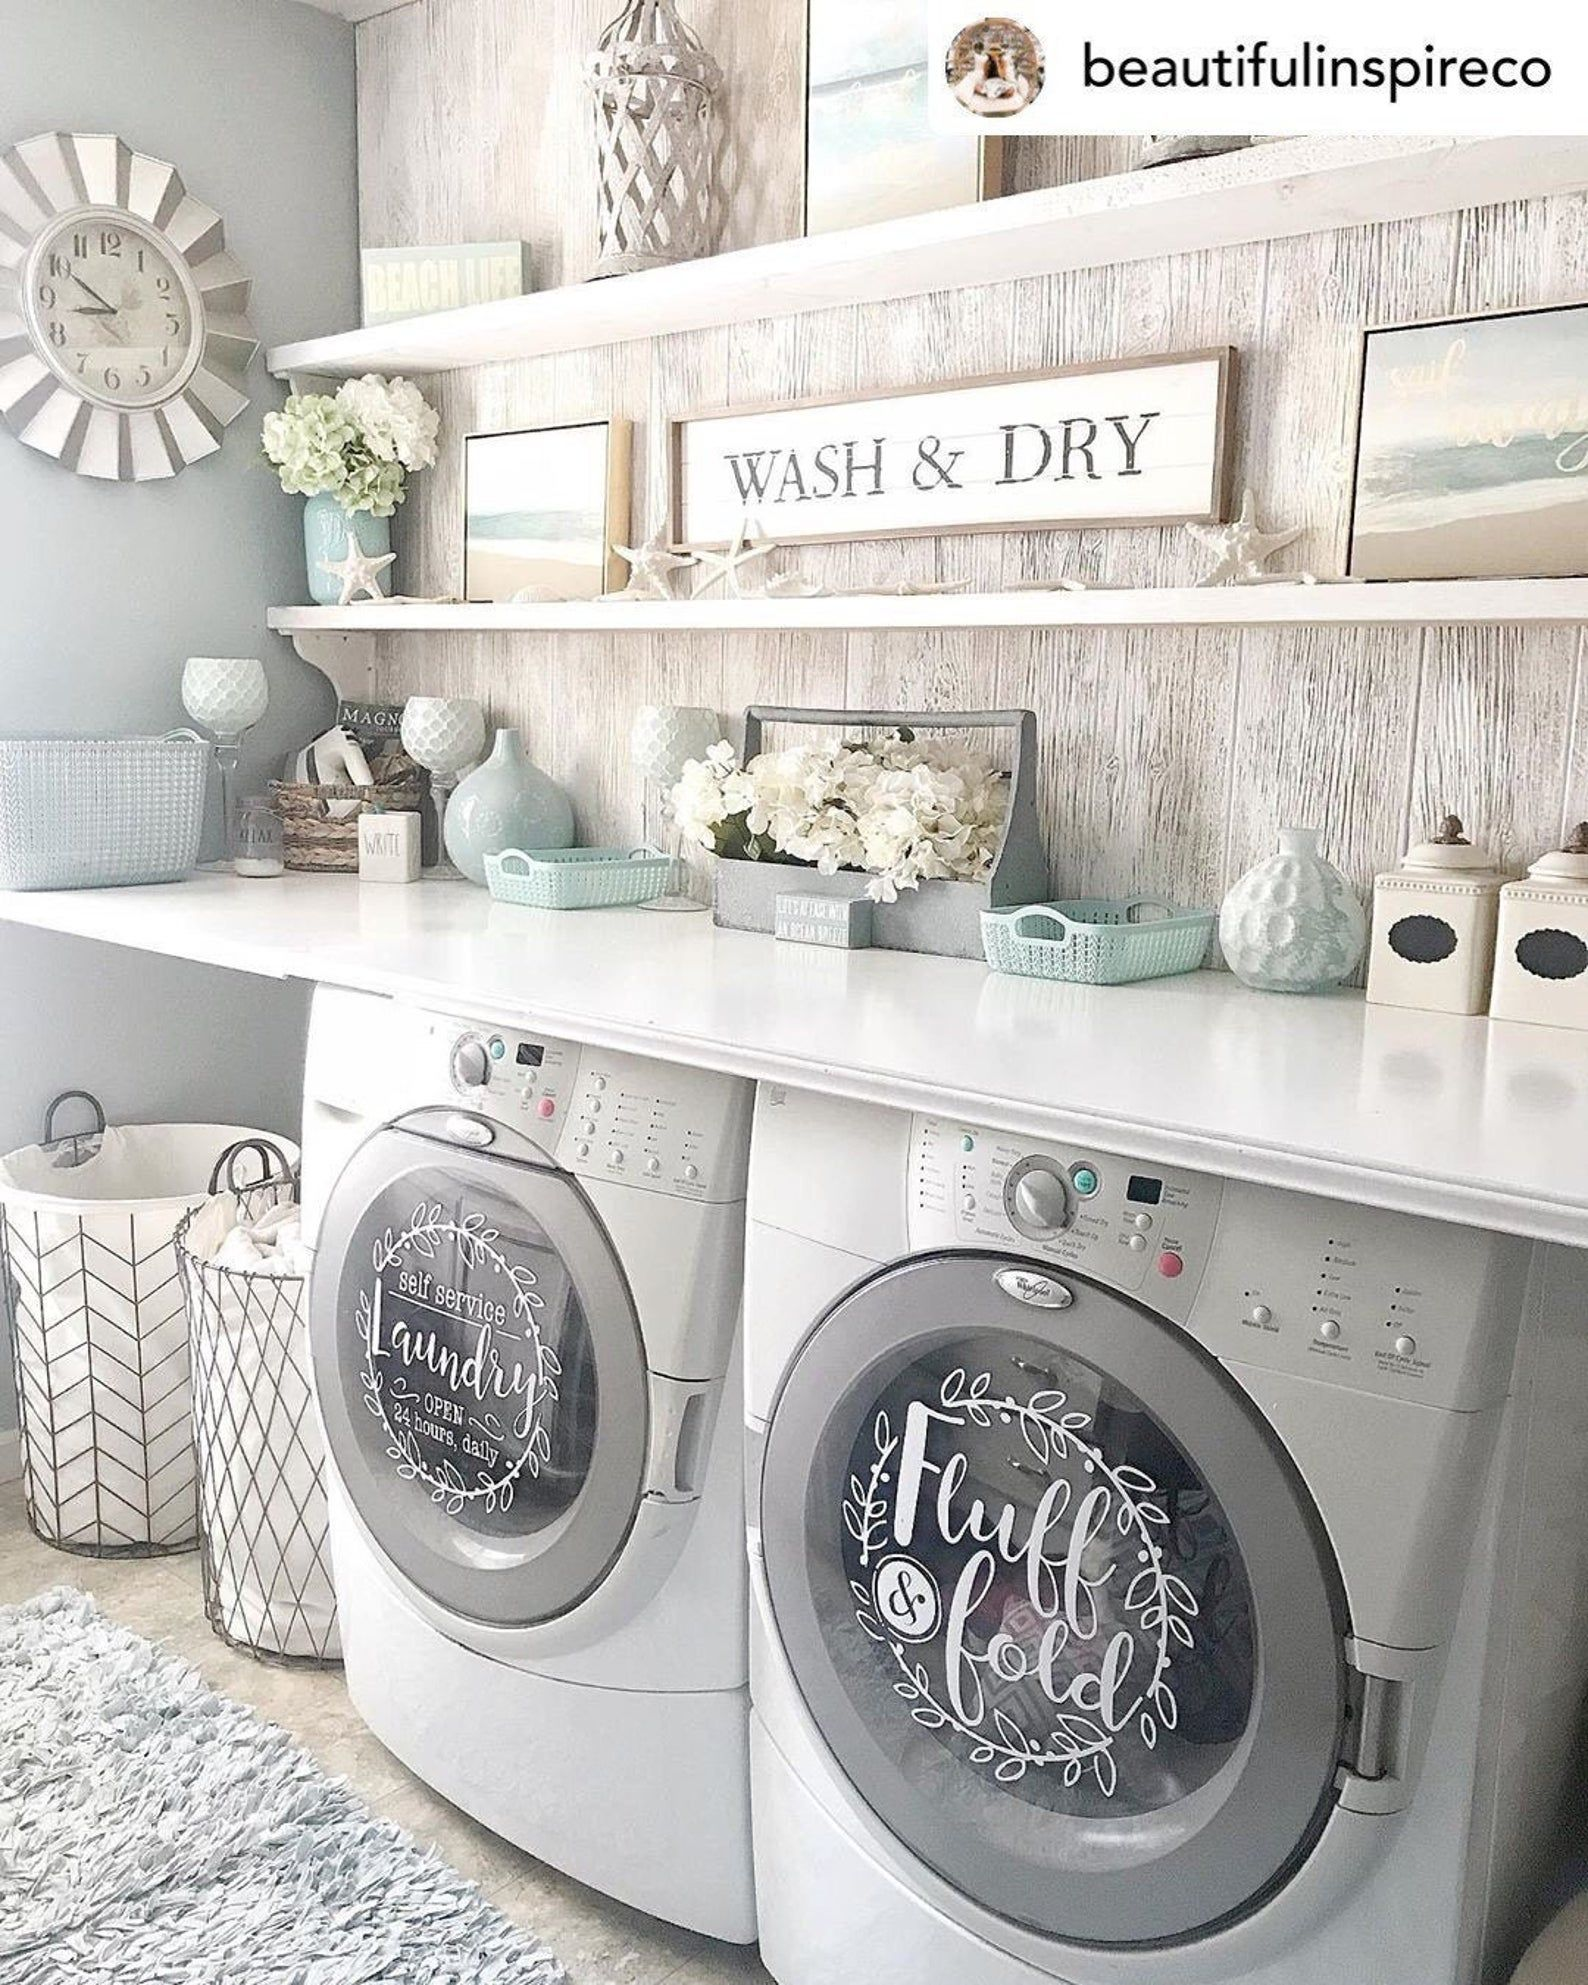 Laundry room decor self service laundry fluff and fold